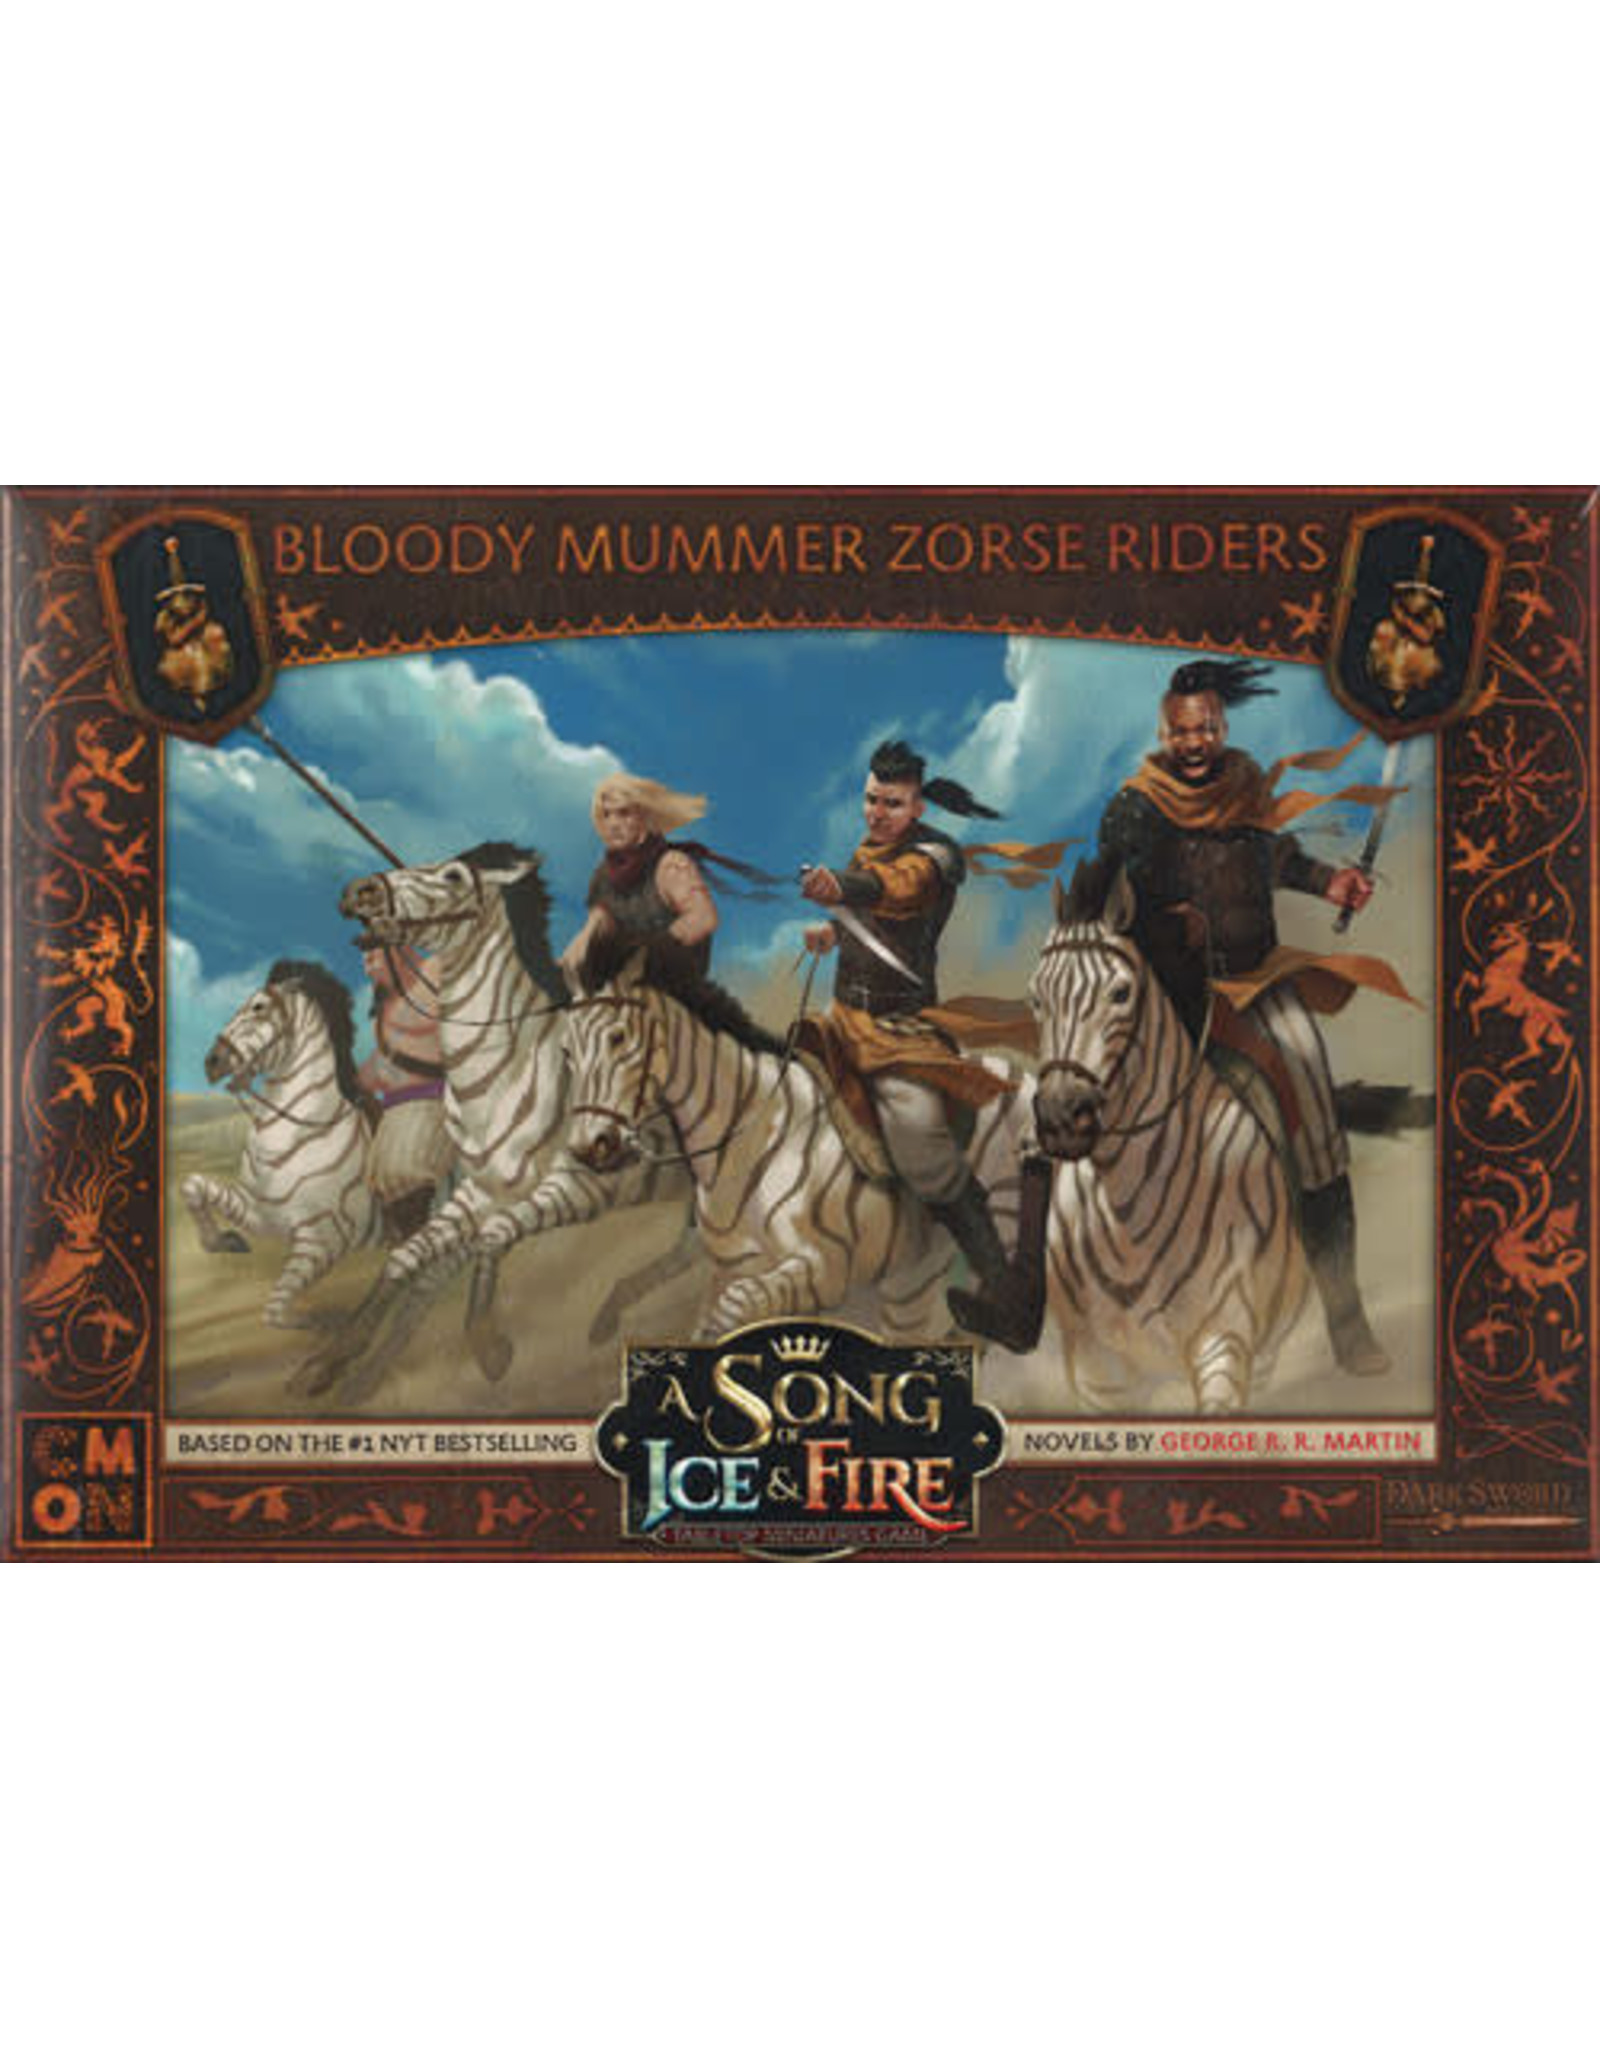 CMON A SONG OF ICE & FIRE: BLOODY MUMMERS ZORSE RIDERS